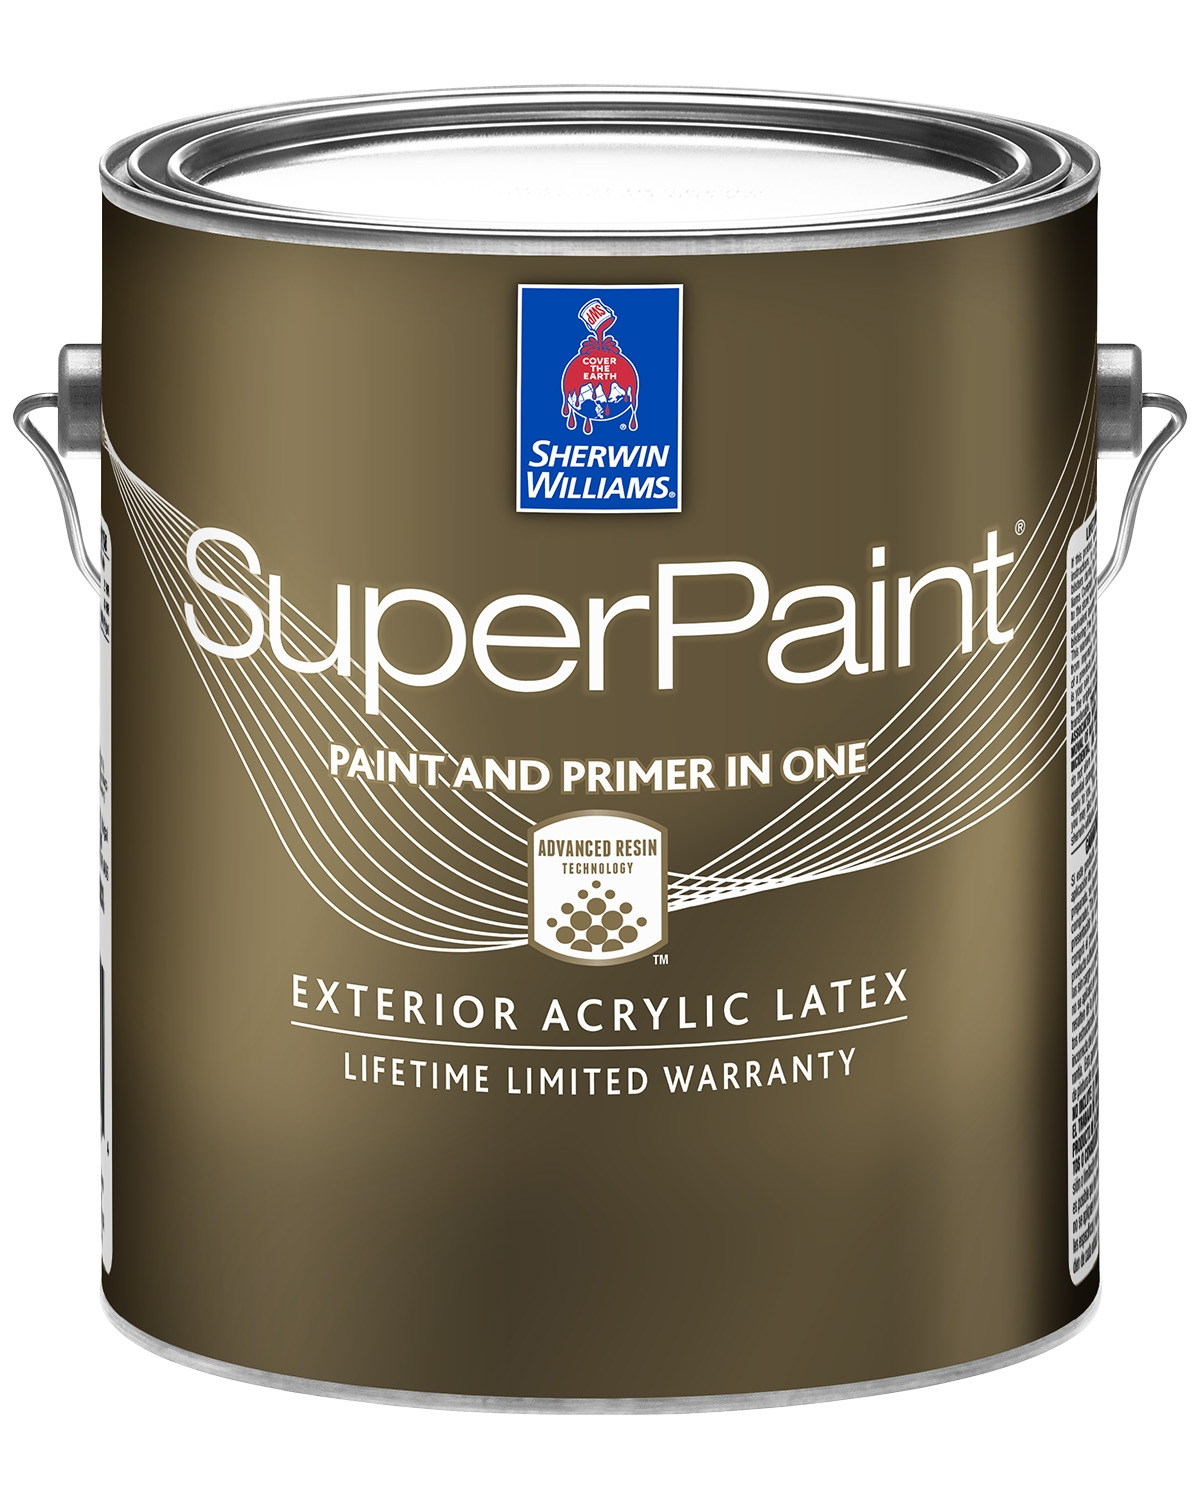 SuperPaint front of can